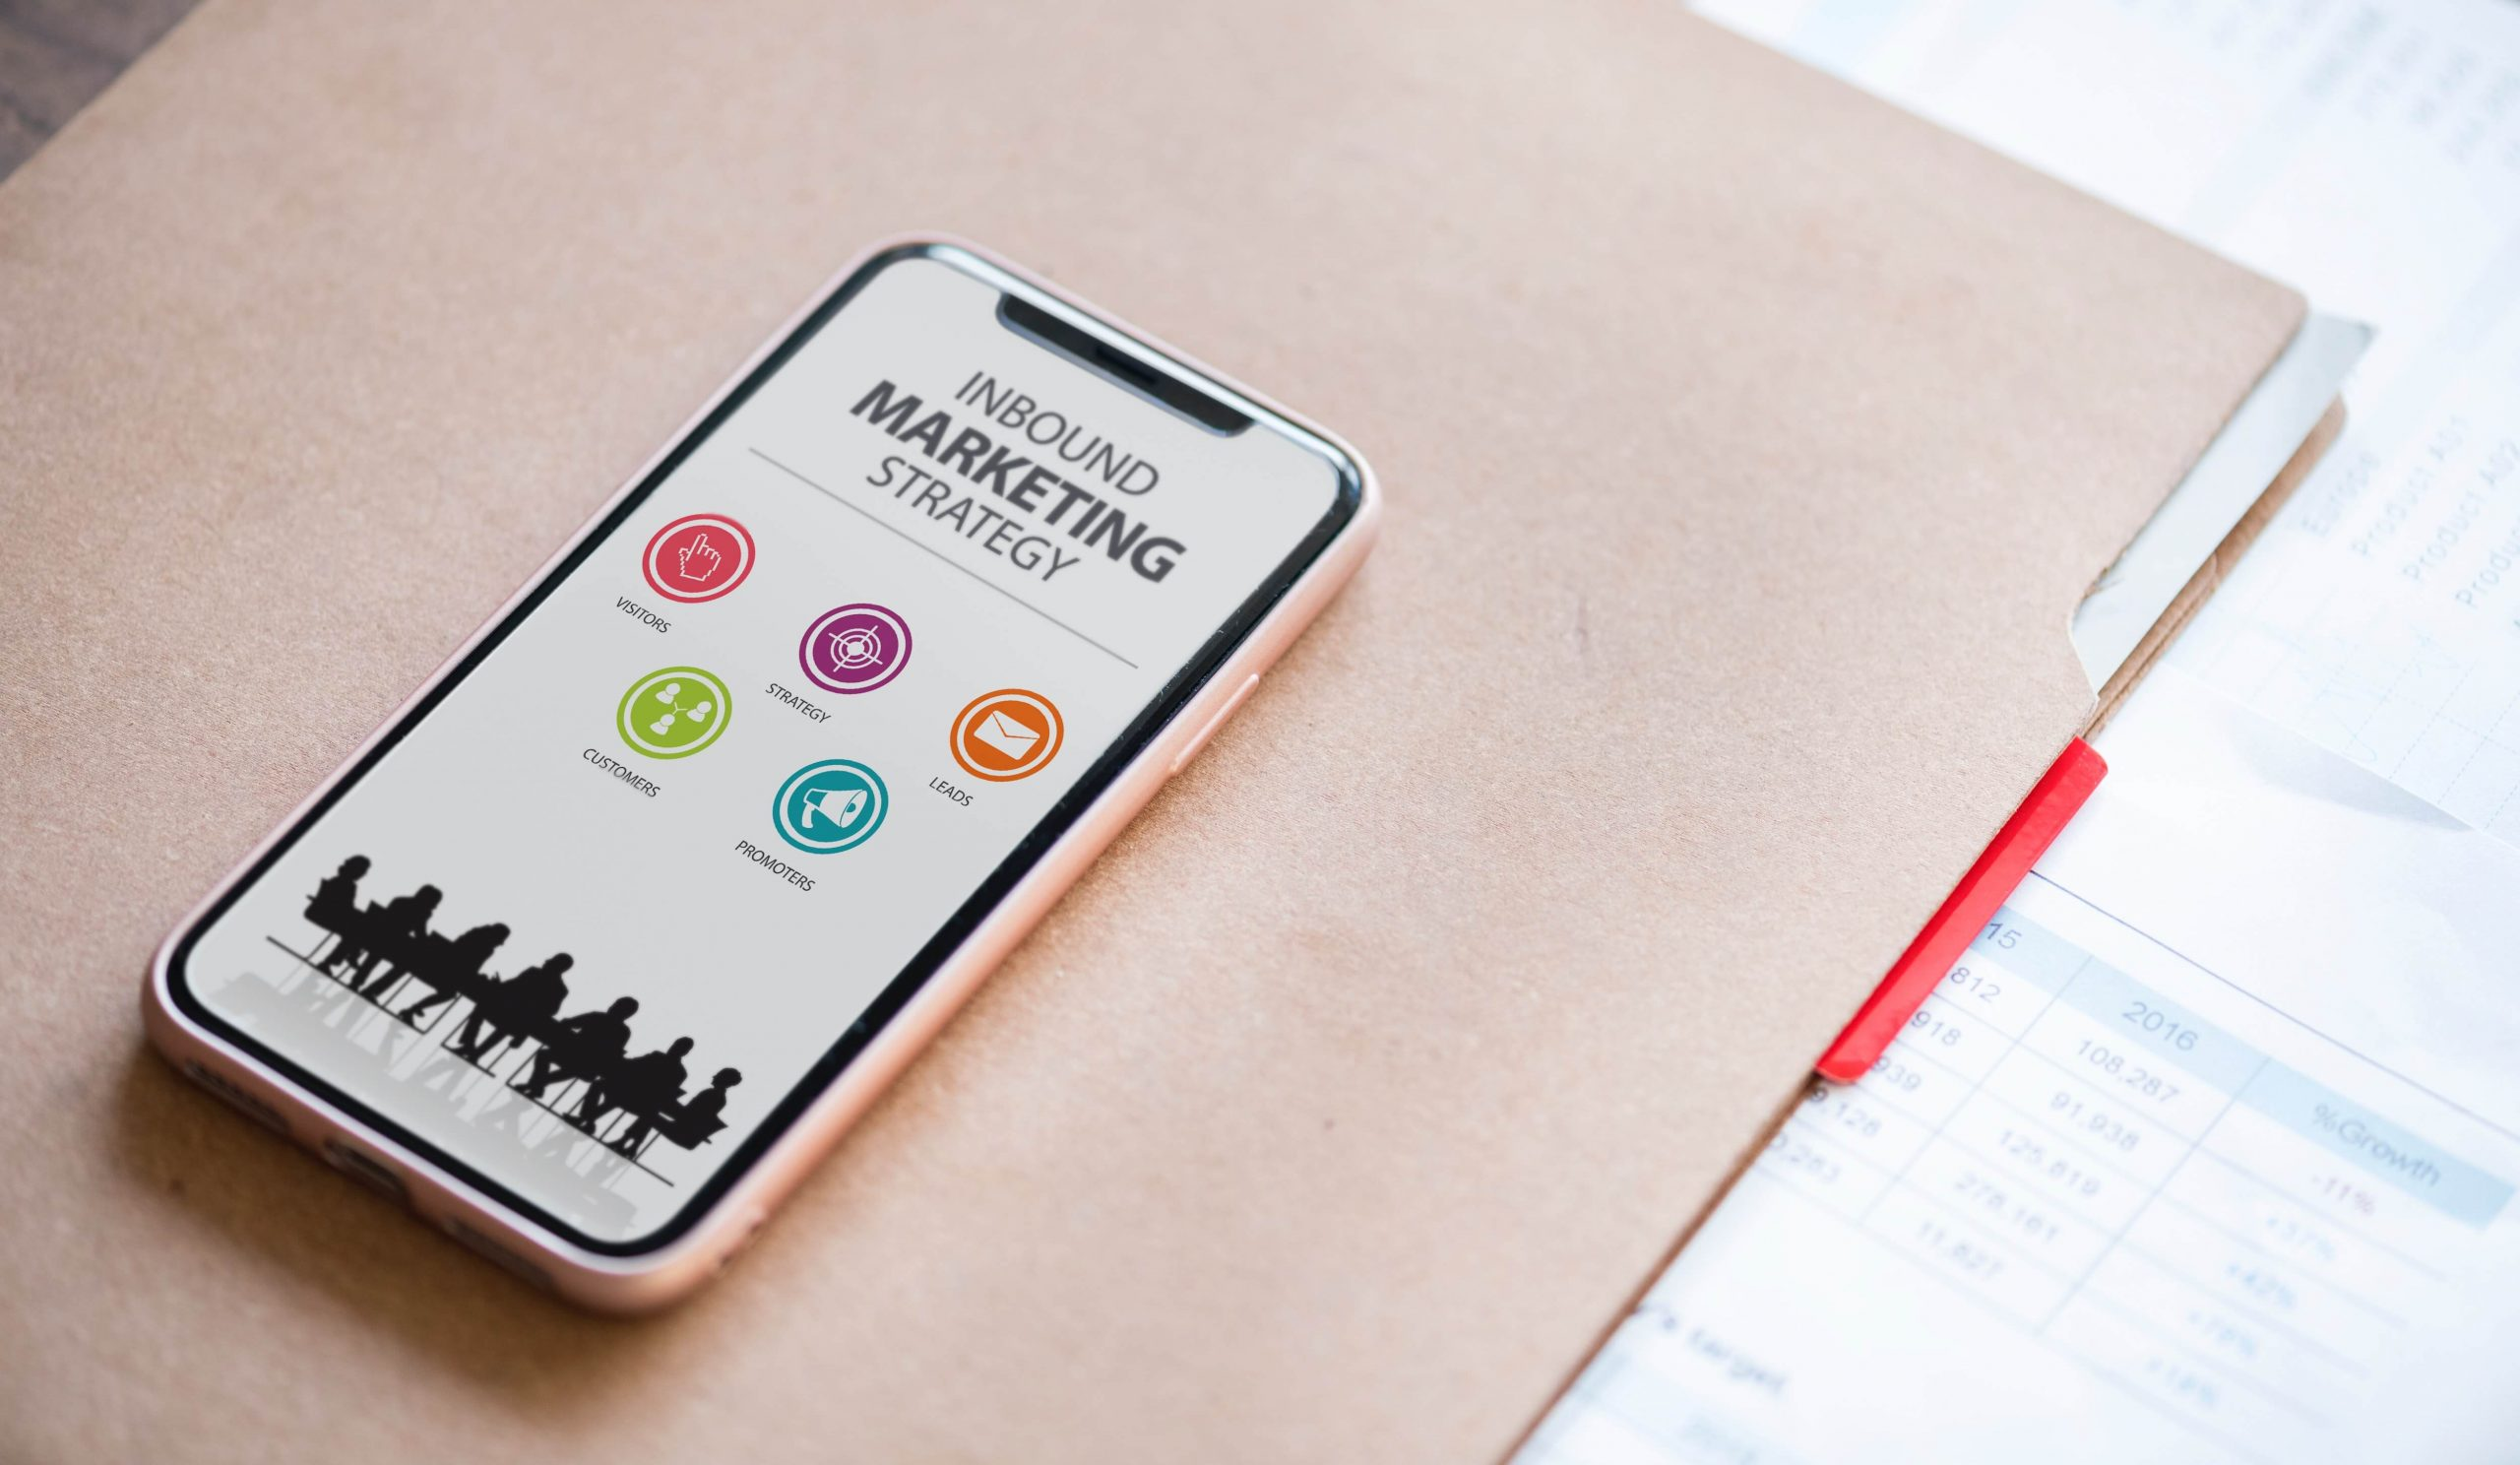 Inbound marketing strategy on mobile